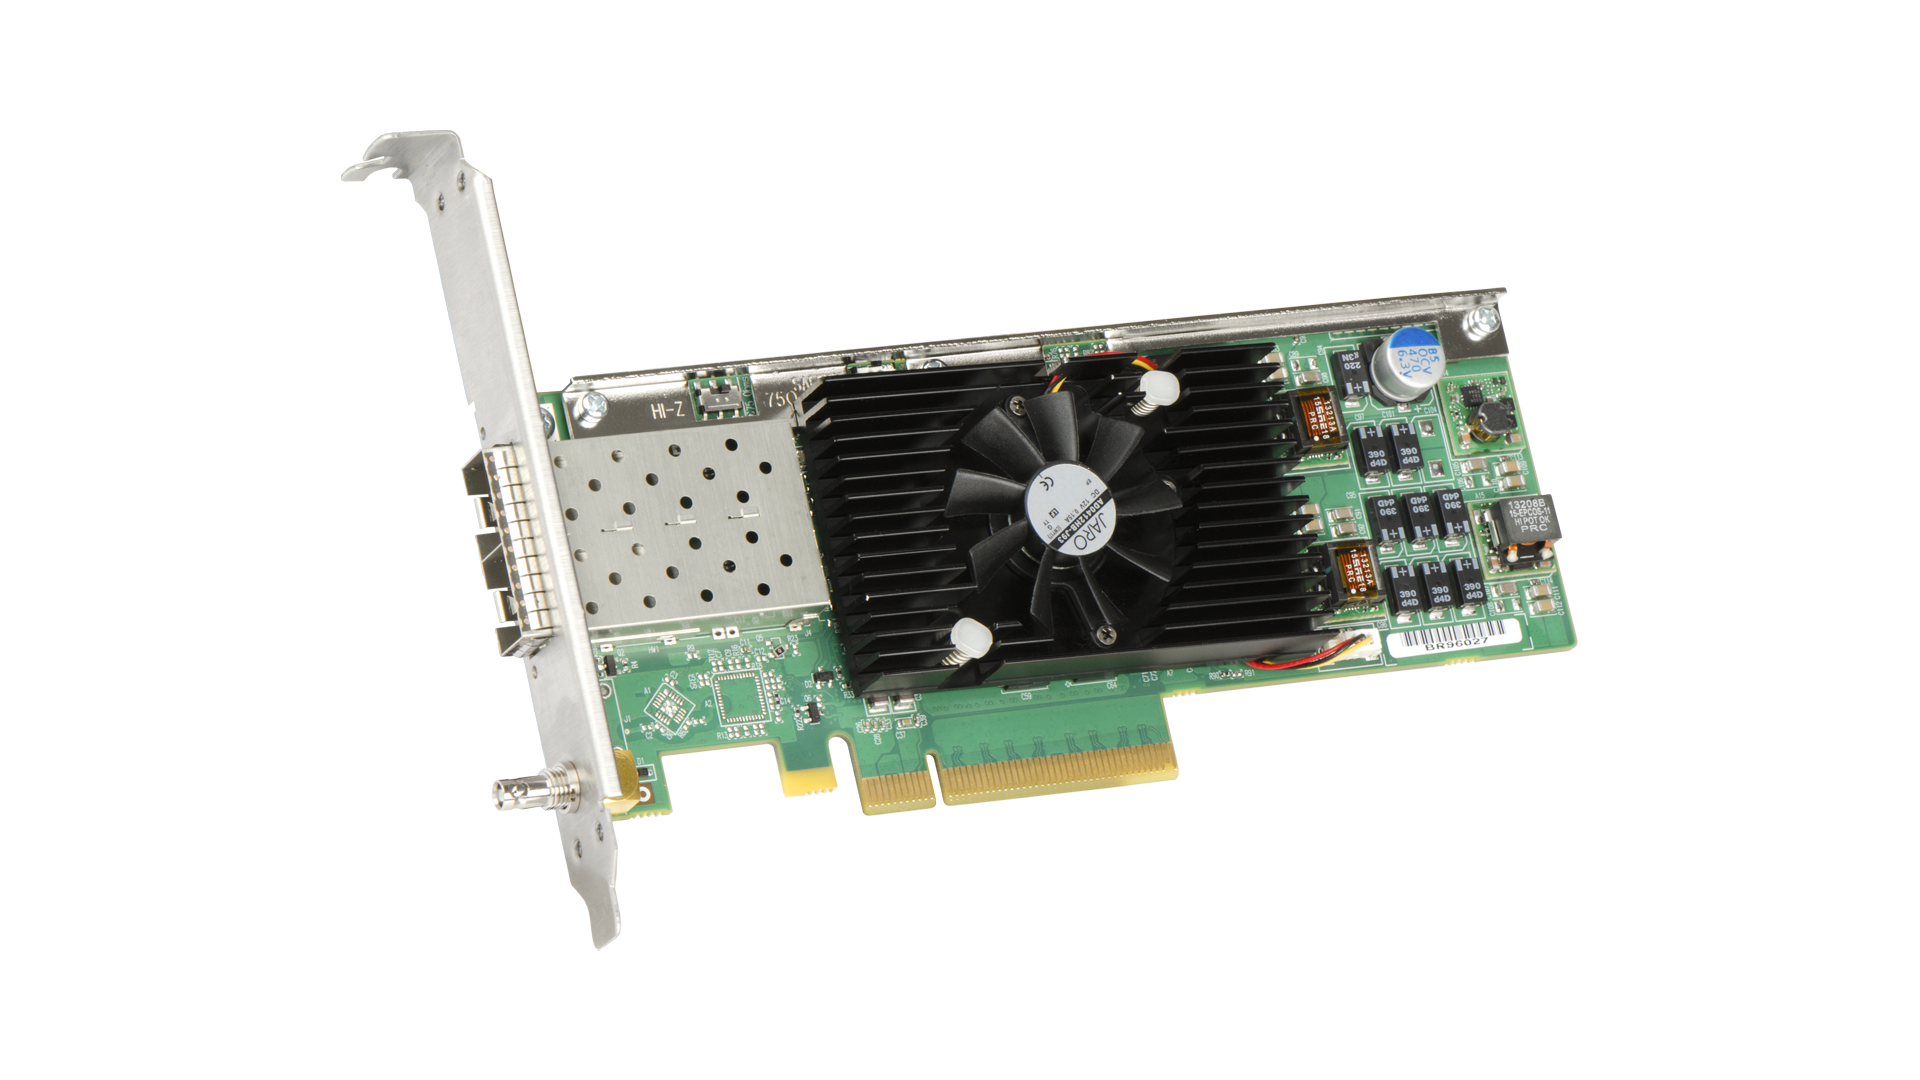 DSX LE4 IP Card